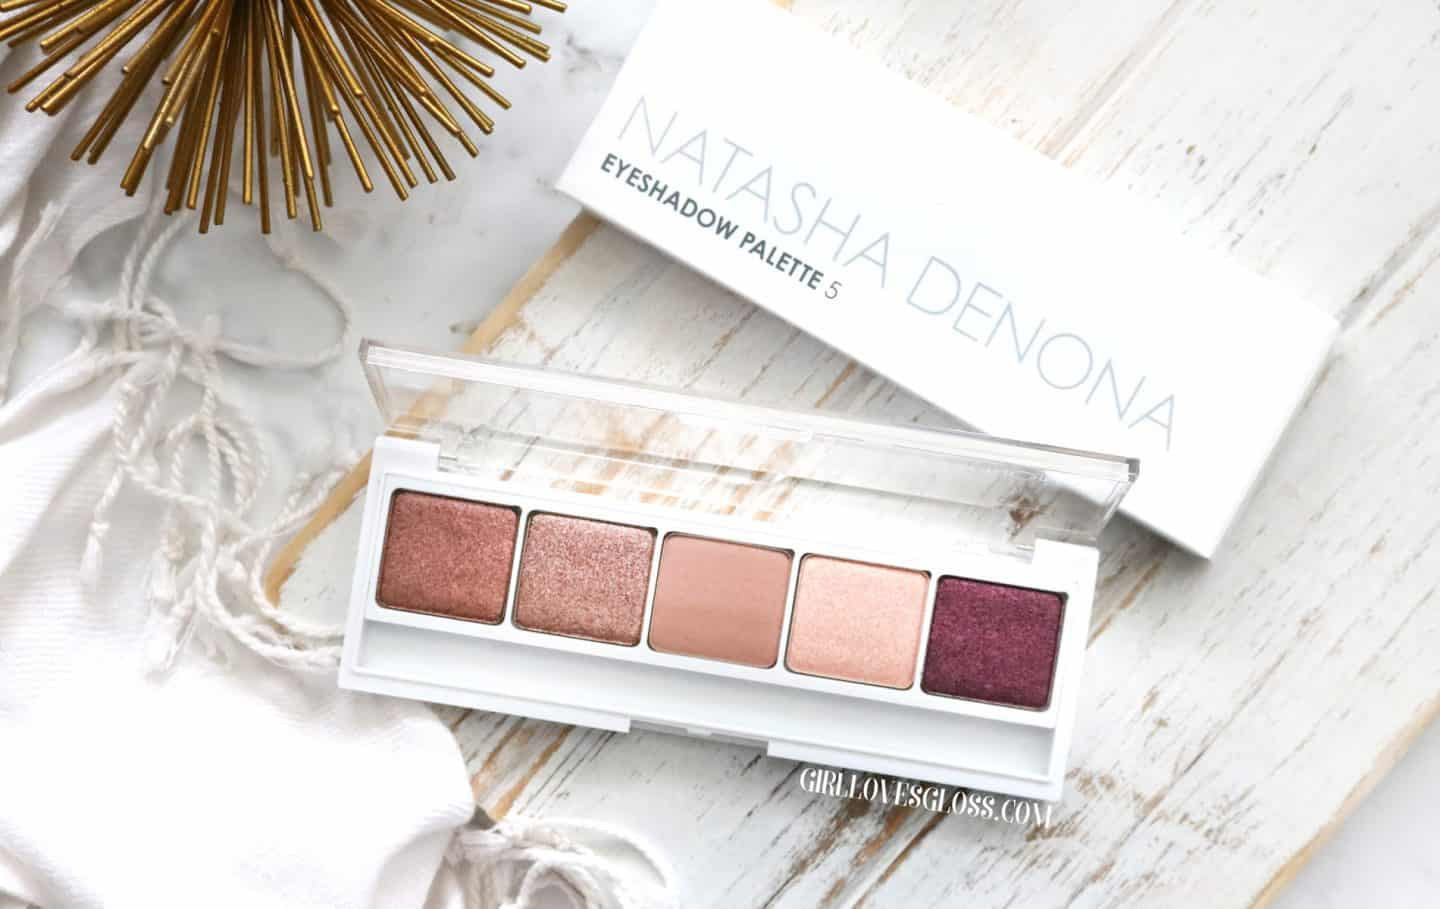 Natasha Denona Eyeshadows: Worth the Hype?